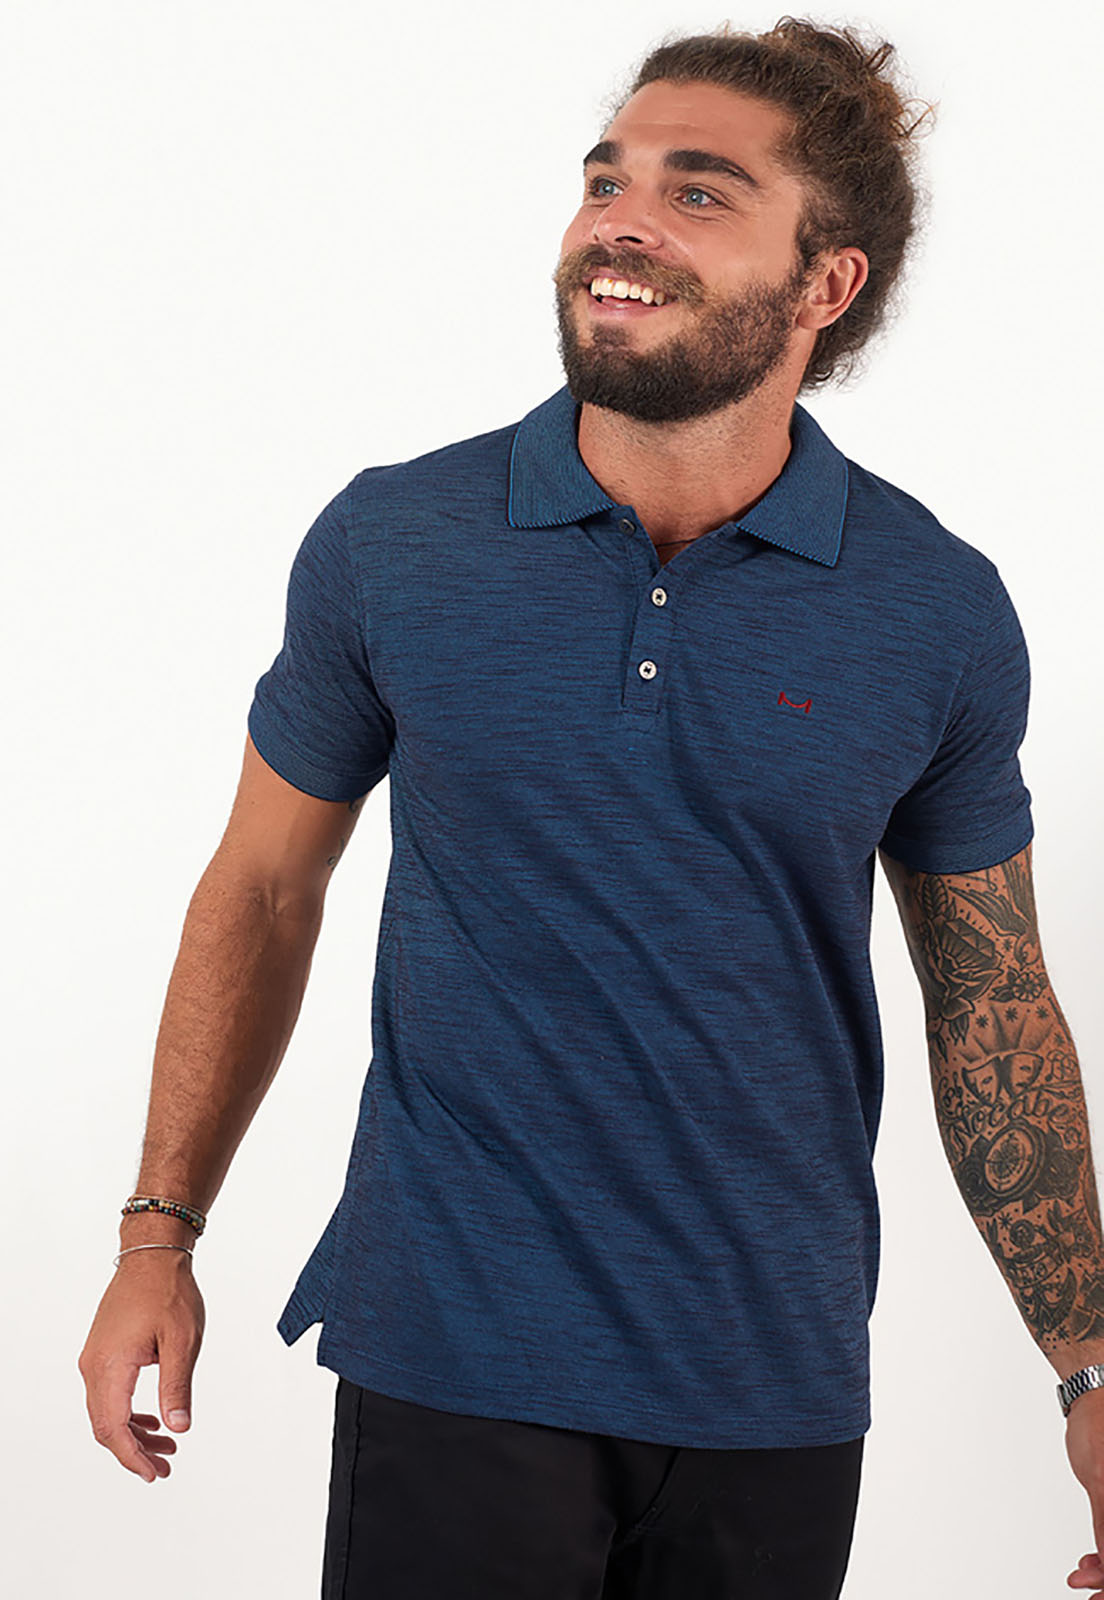 Polo Madri melty  - melty surf & Co.